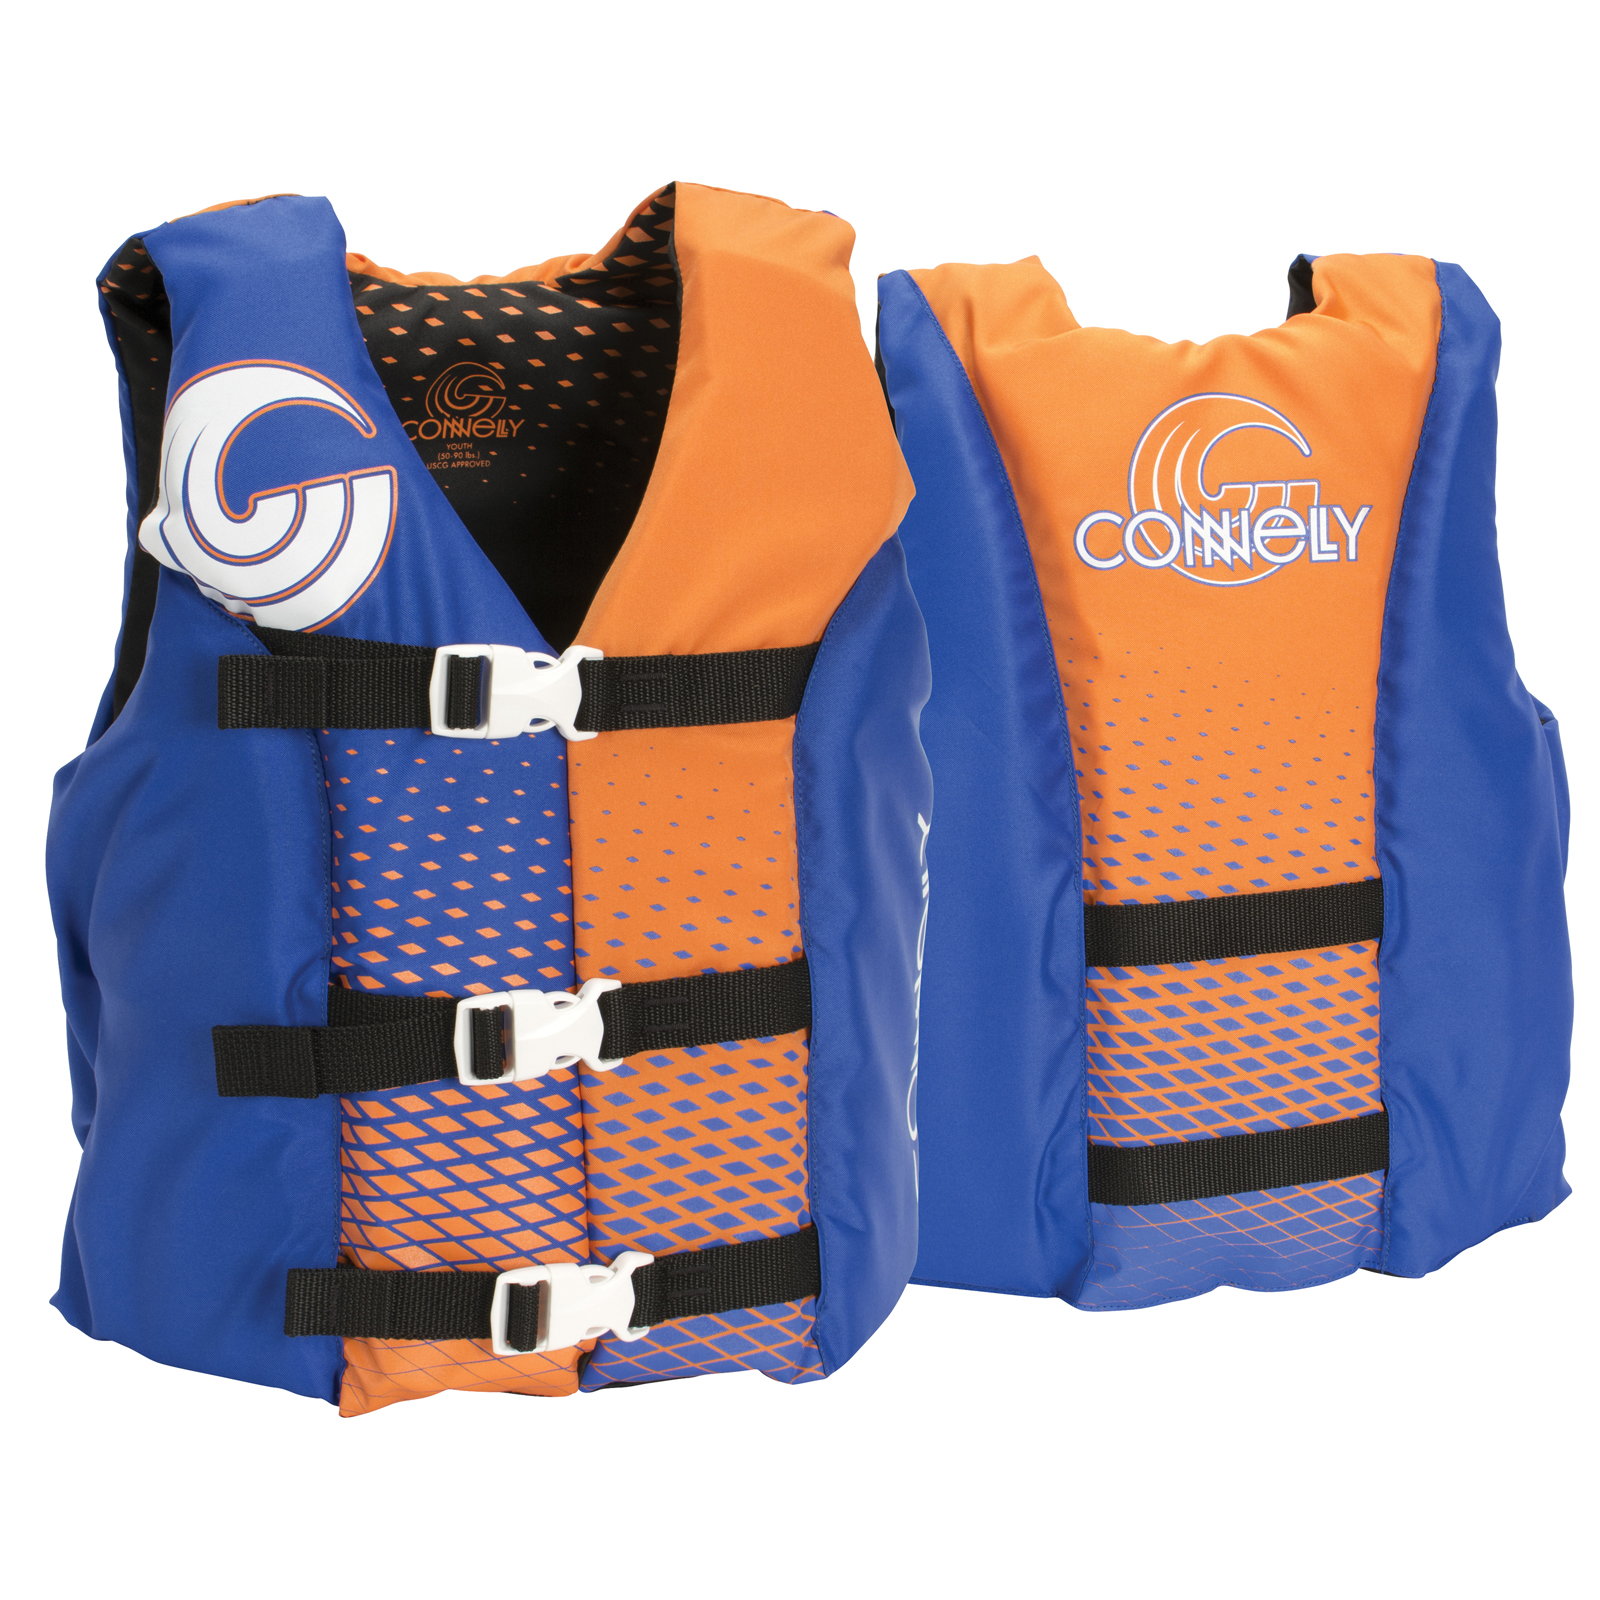 3-BELT BOY'S NYLON LIFE VEST - YOUTH 22-40KG CONNELLY 2019